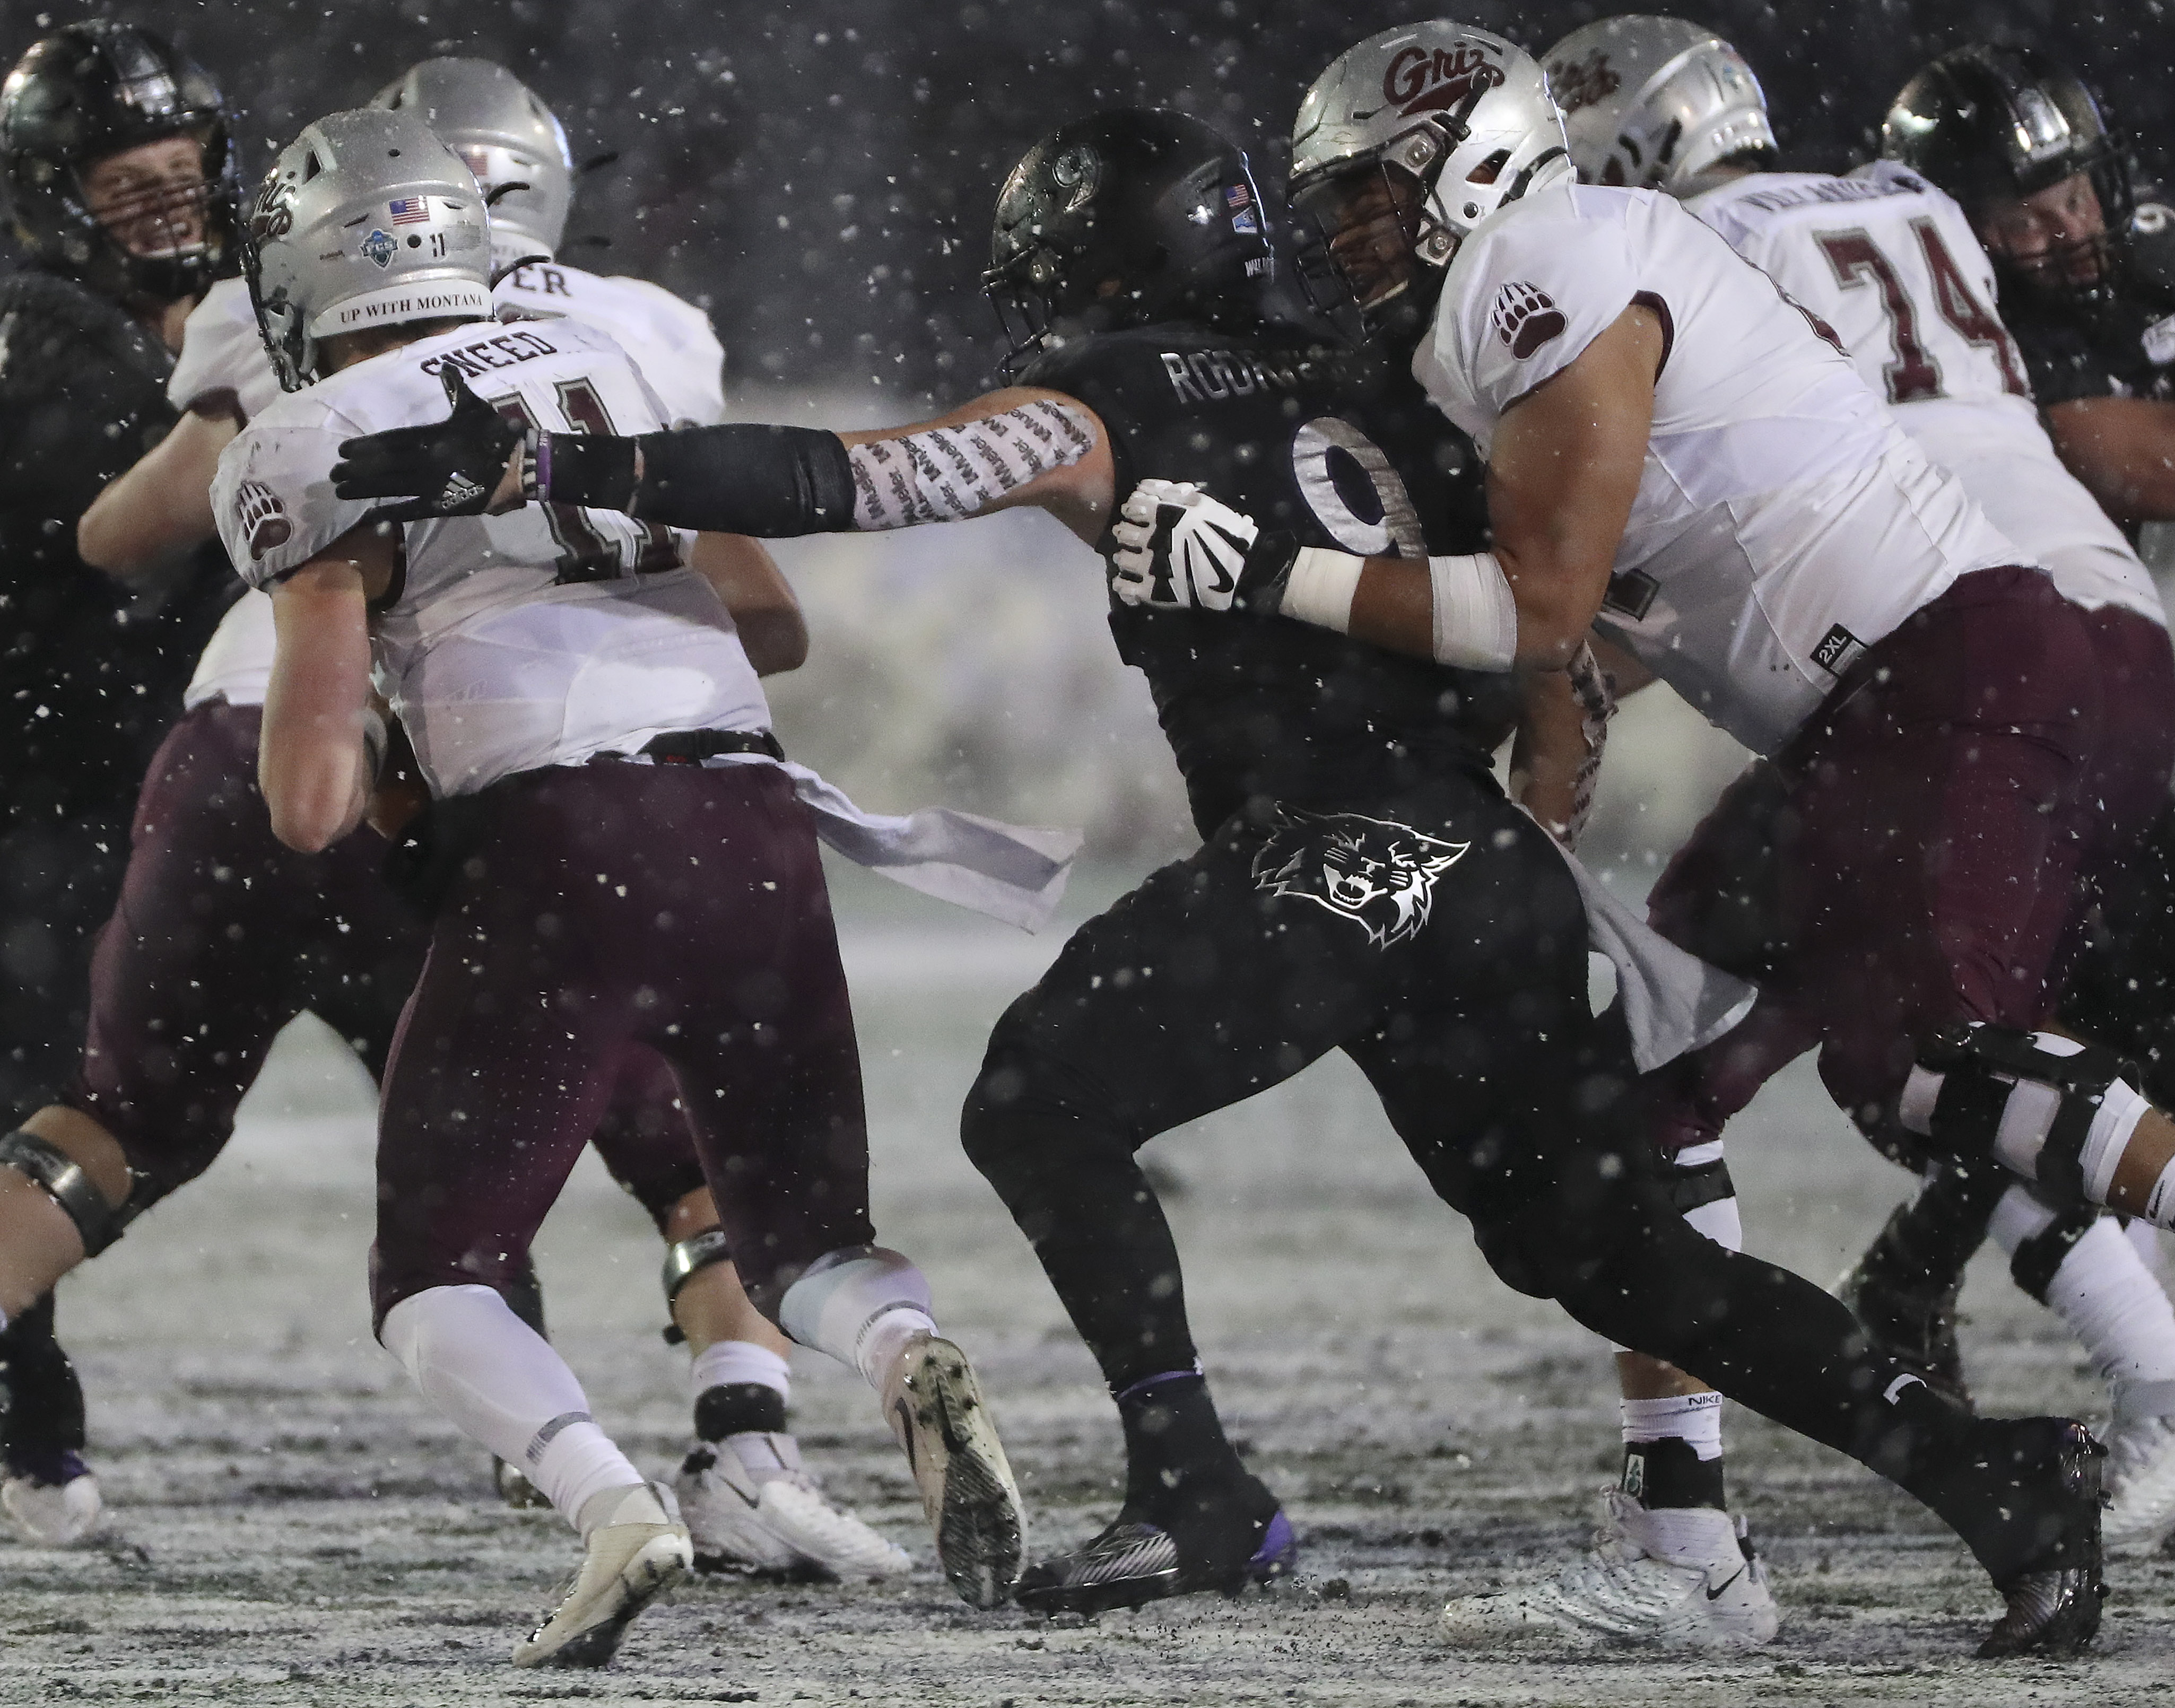 Weber State Wildcats defensive end Adam Rodriguez (9) sacks Montana Grizzlies quarterback Dalton Sneed (11) during the FCS quarterfinals at Stewart Stadium in Ogden on Friday, Dec. 13, 2019.